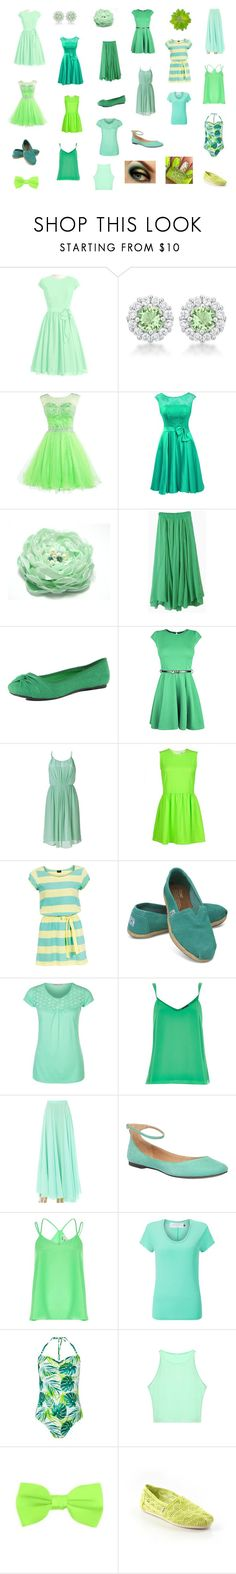 """""""Tinkerbell's closet"""" by hunterhayesfan92 ❤ liked on Polyvore featuring Dorothy Perkins, Sandro, Michelle Roy, Serious Sally, TOMS, Anna Field, River Island, Steven by Steve Madden and John Lewis"""